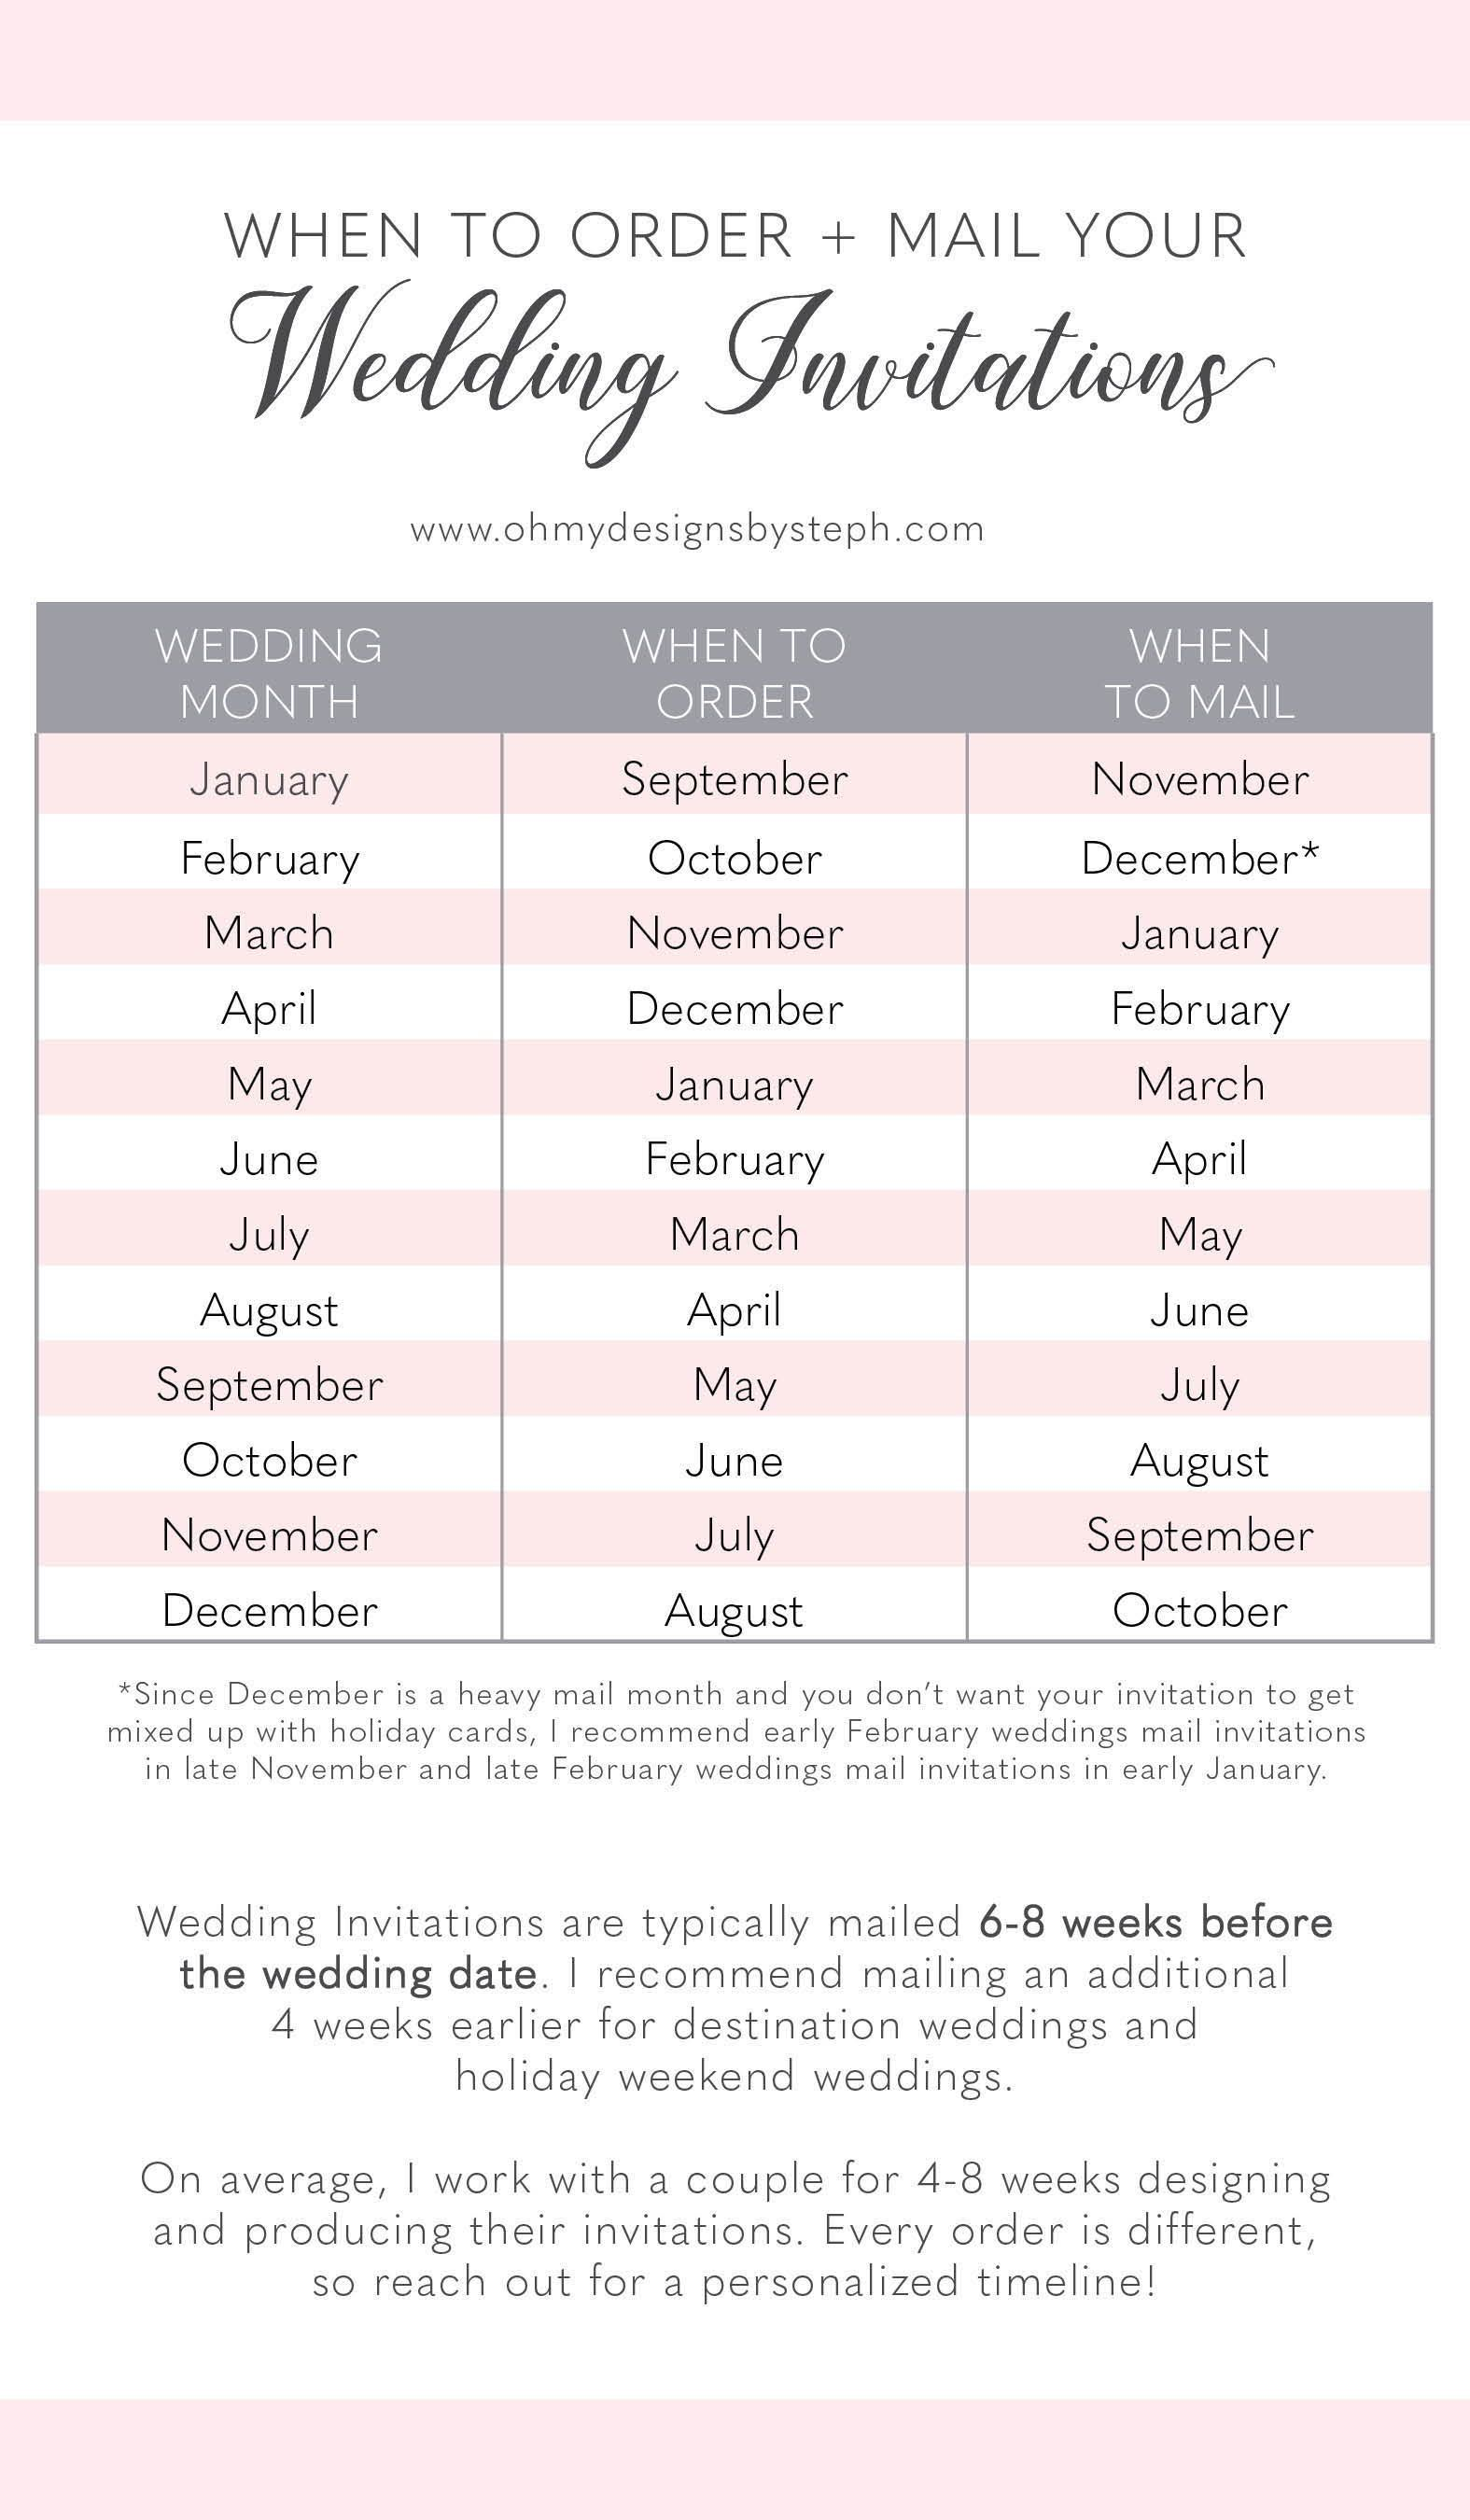 Quick Guide on When to Order and Mail your Wedding